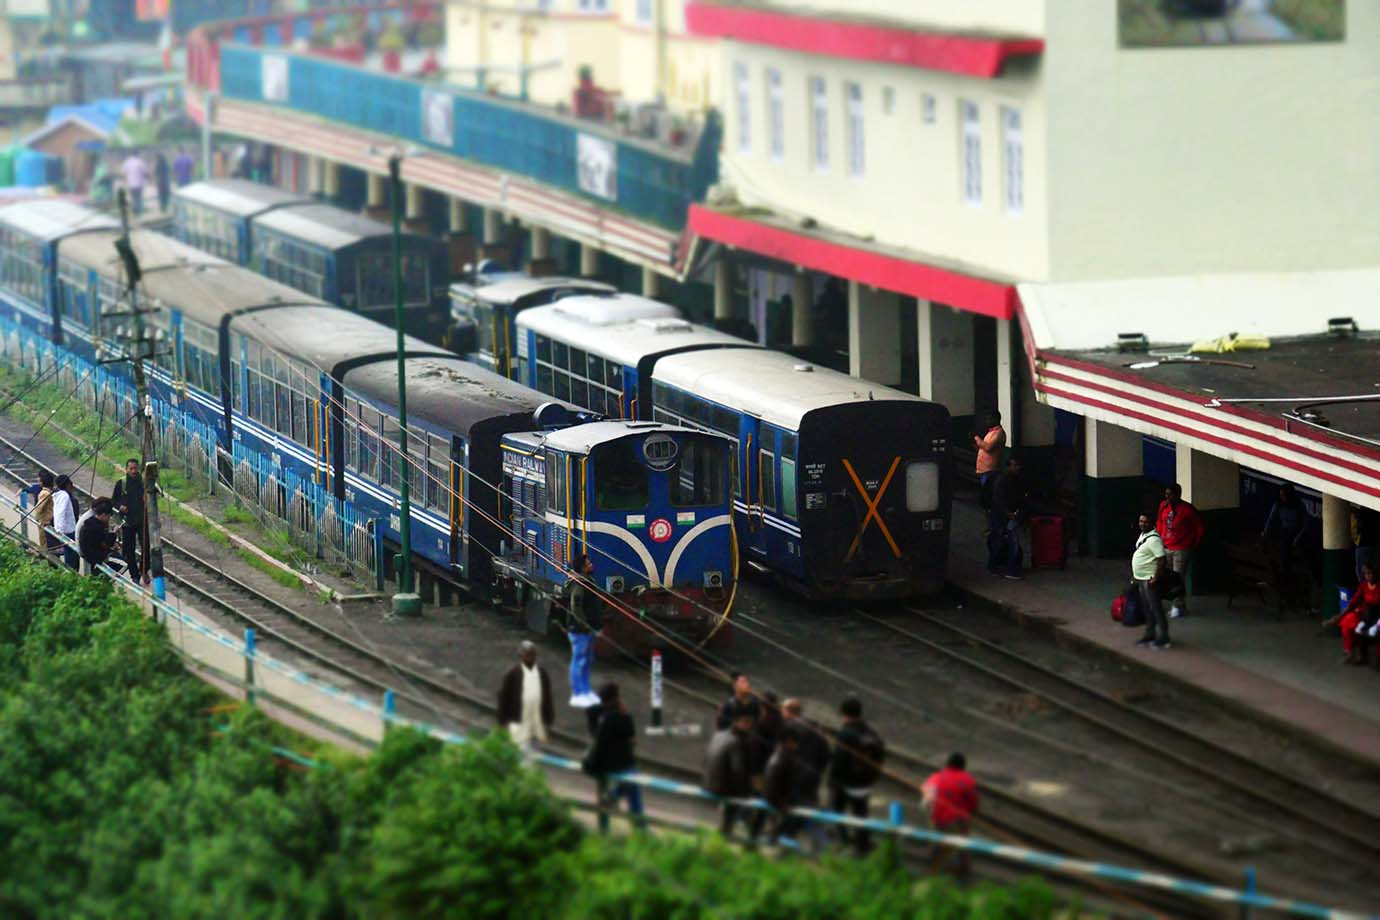 ride-darjeeling-railway-india2